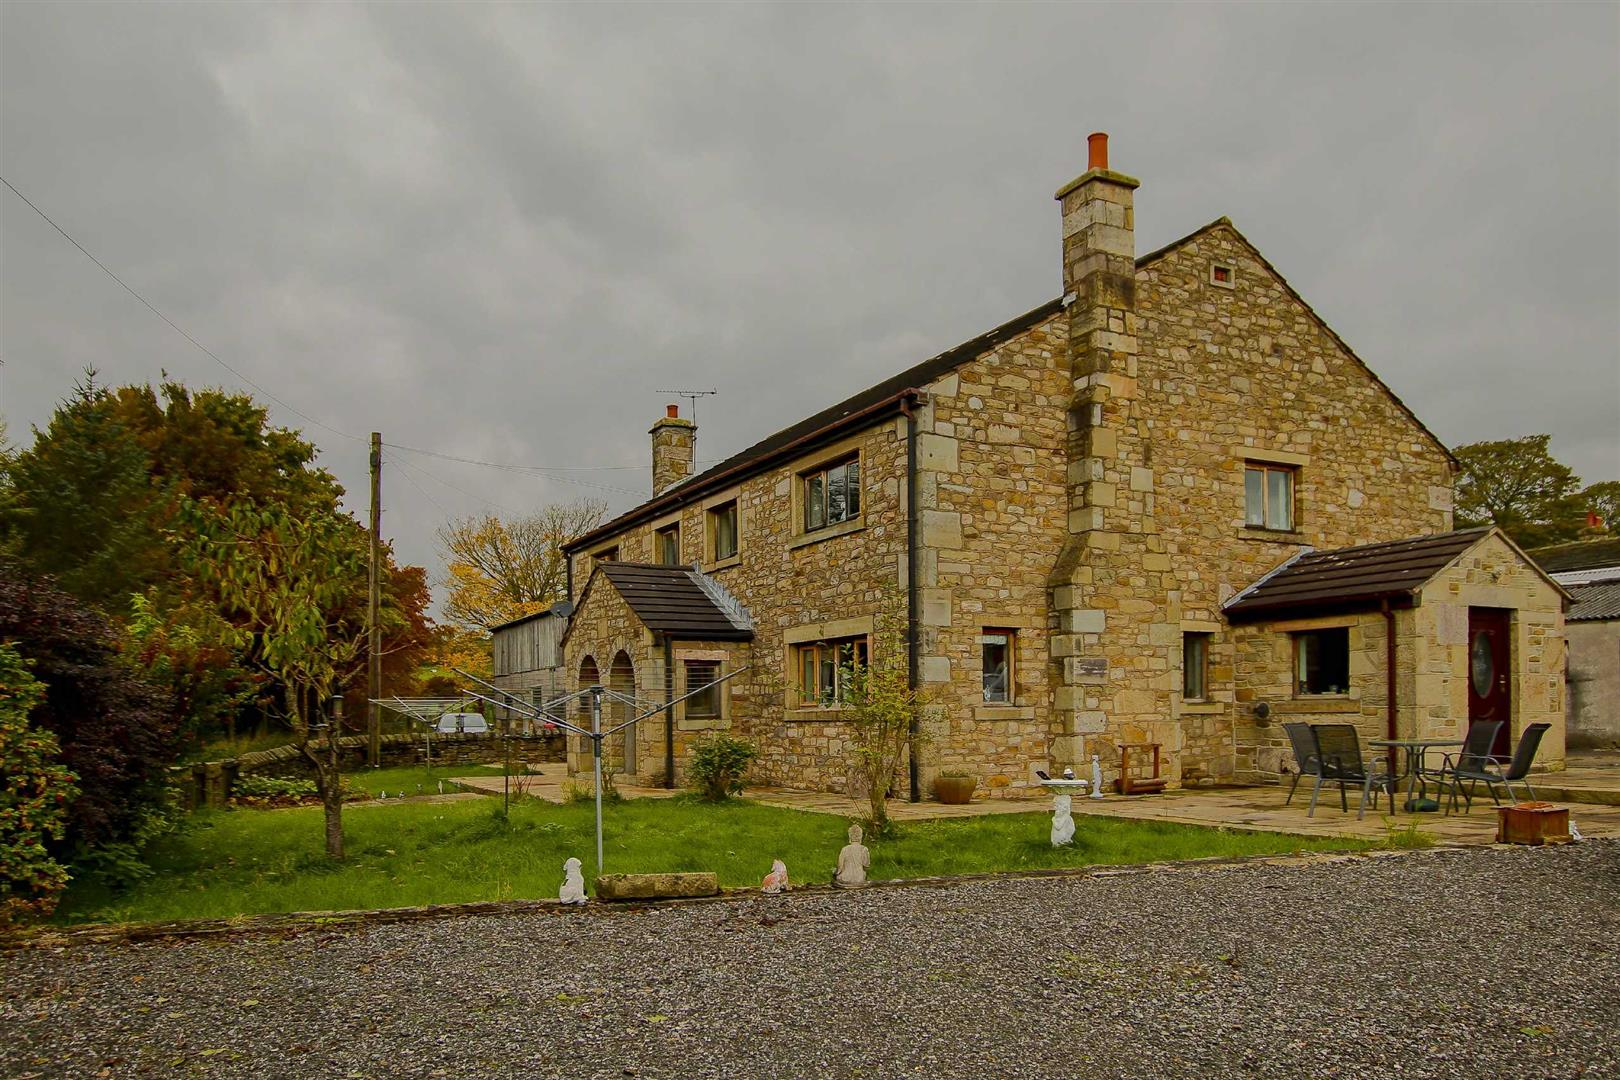 9 Bedroom Barn Conversion For Sale - Main Image